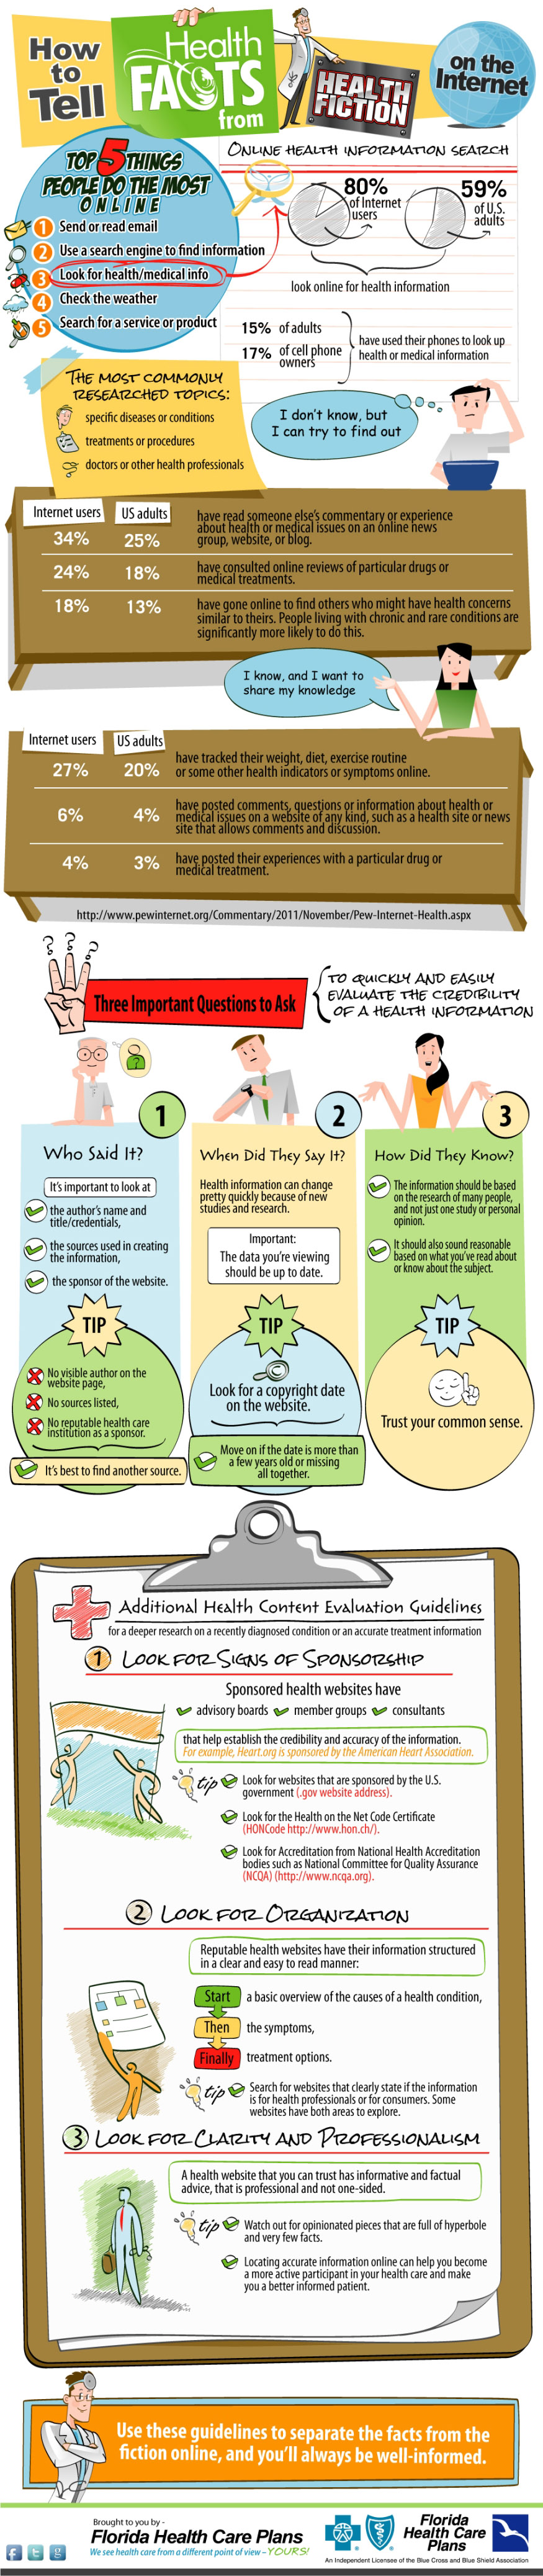 Fact or Fiction: Verifying Online Health Information - Infographic